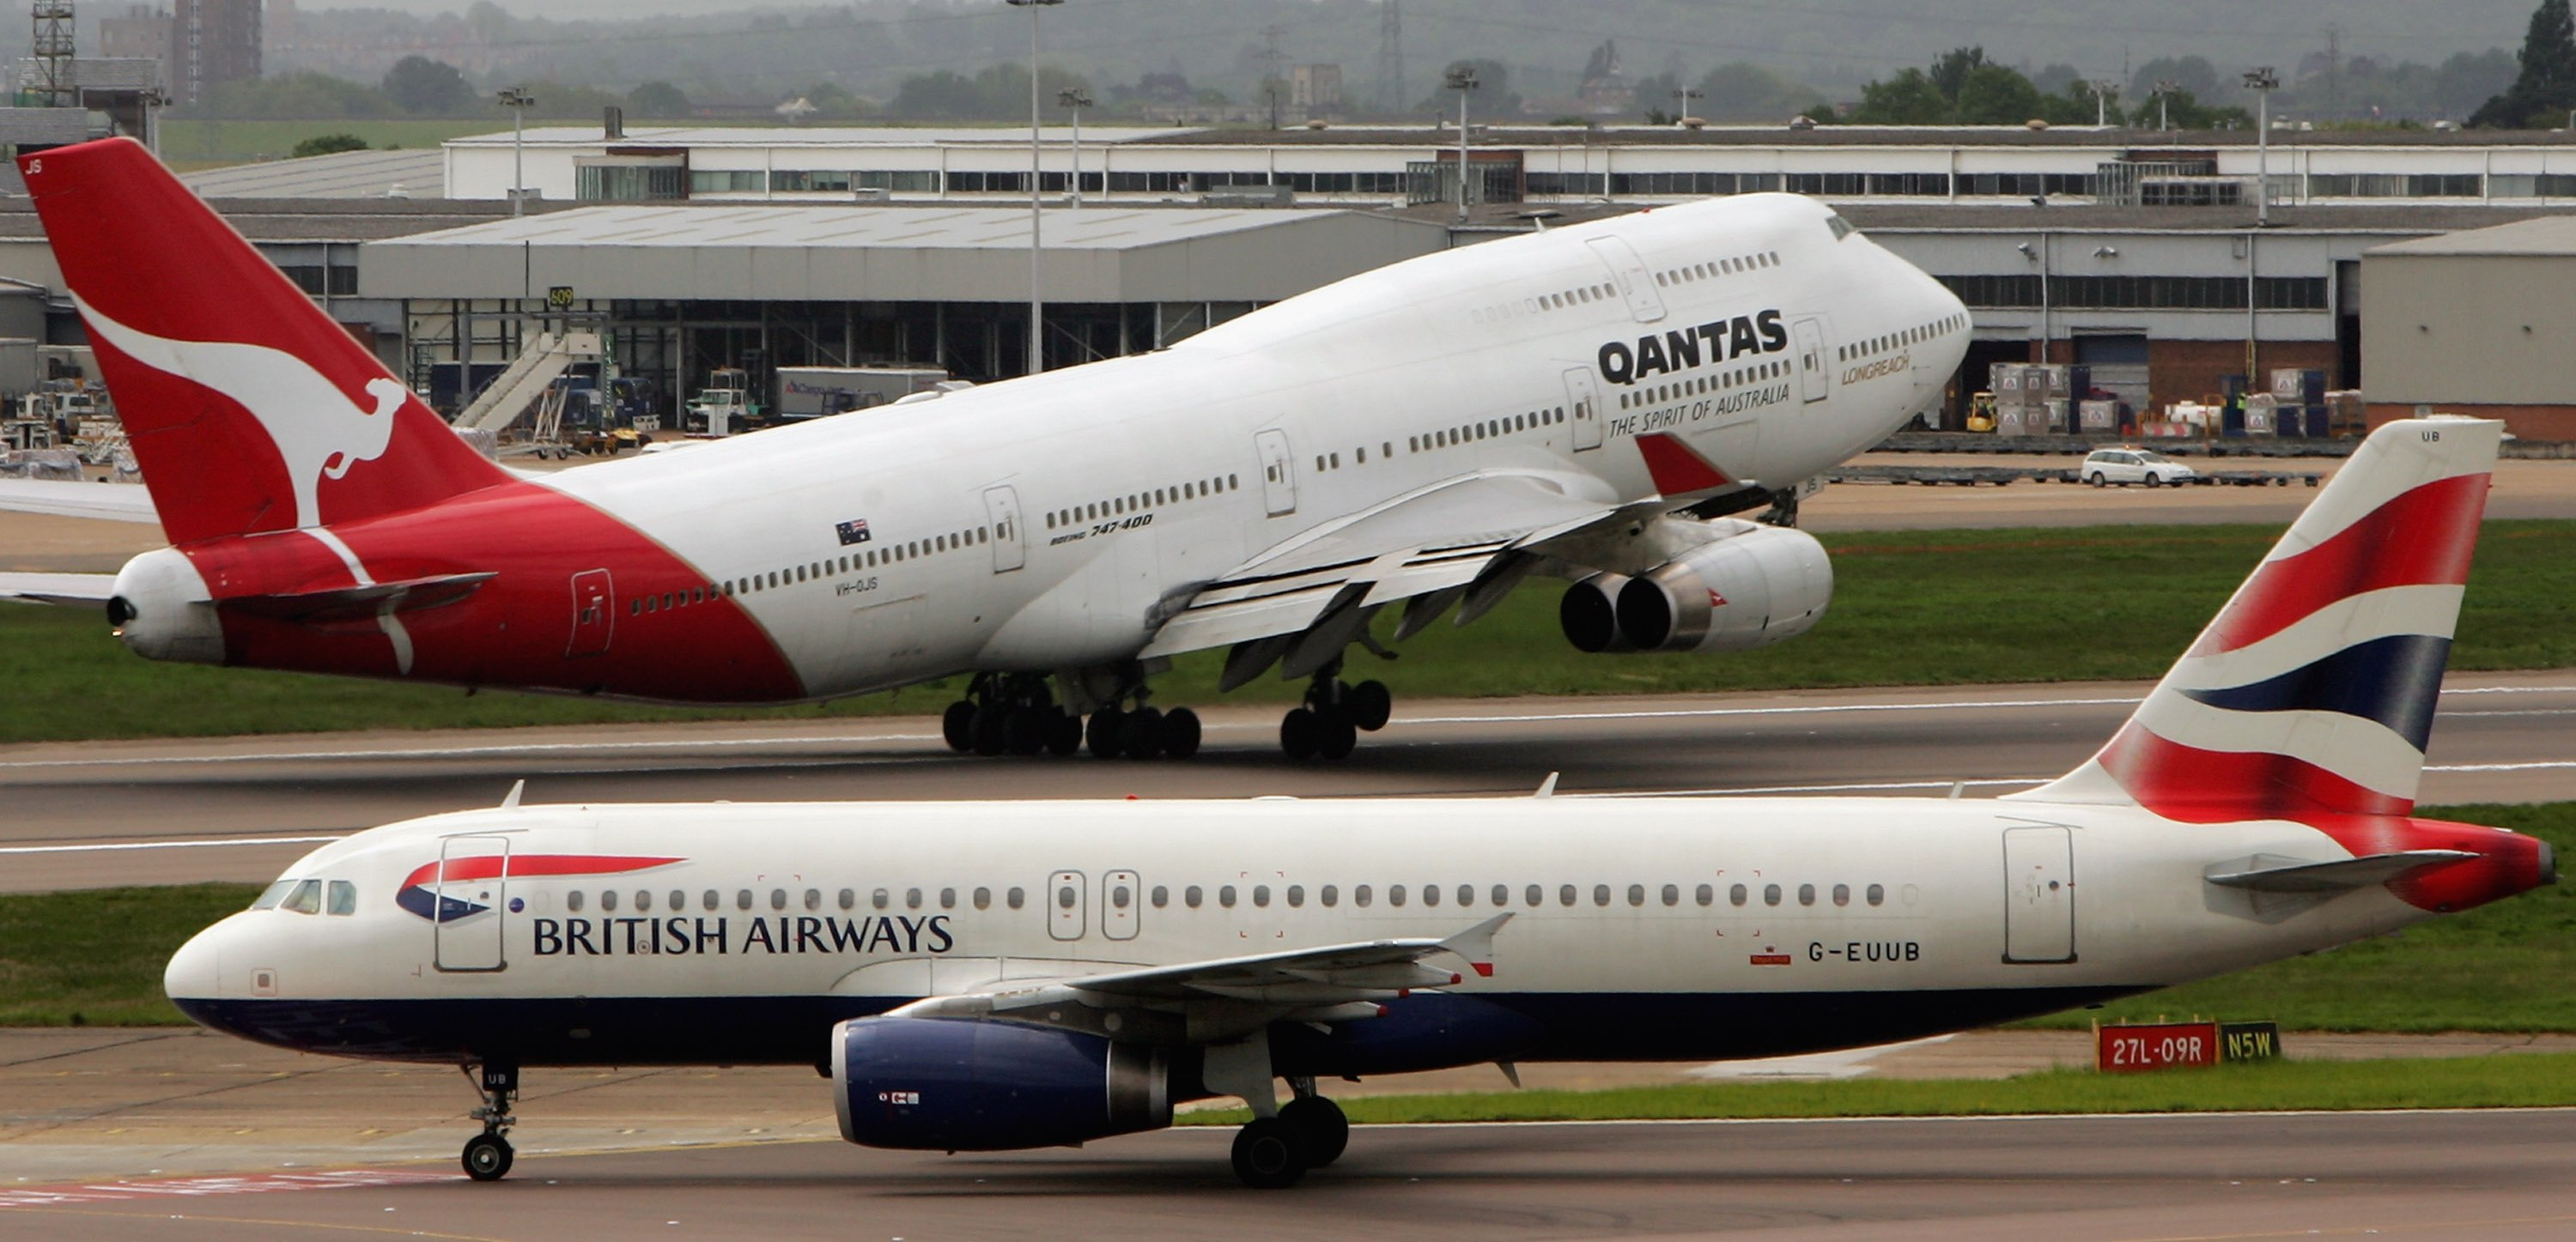 LONDON - MAY 18:  A Qantas aircraft takes off as a British Airways aircratf taxis down the runway at London Heathrow Airport on May 18, 2006 in London, England. Heathrow consists of four passenger terminals and is responsible for around half a million takeoffs/landings and transporting around 65 million passengers every year. (Photo by Scott Barbour/Getty Images)